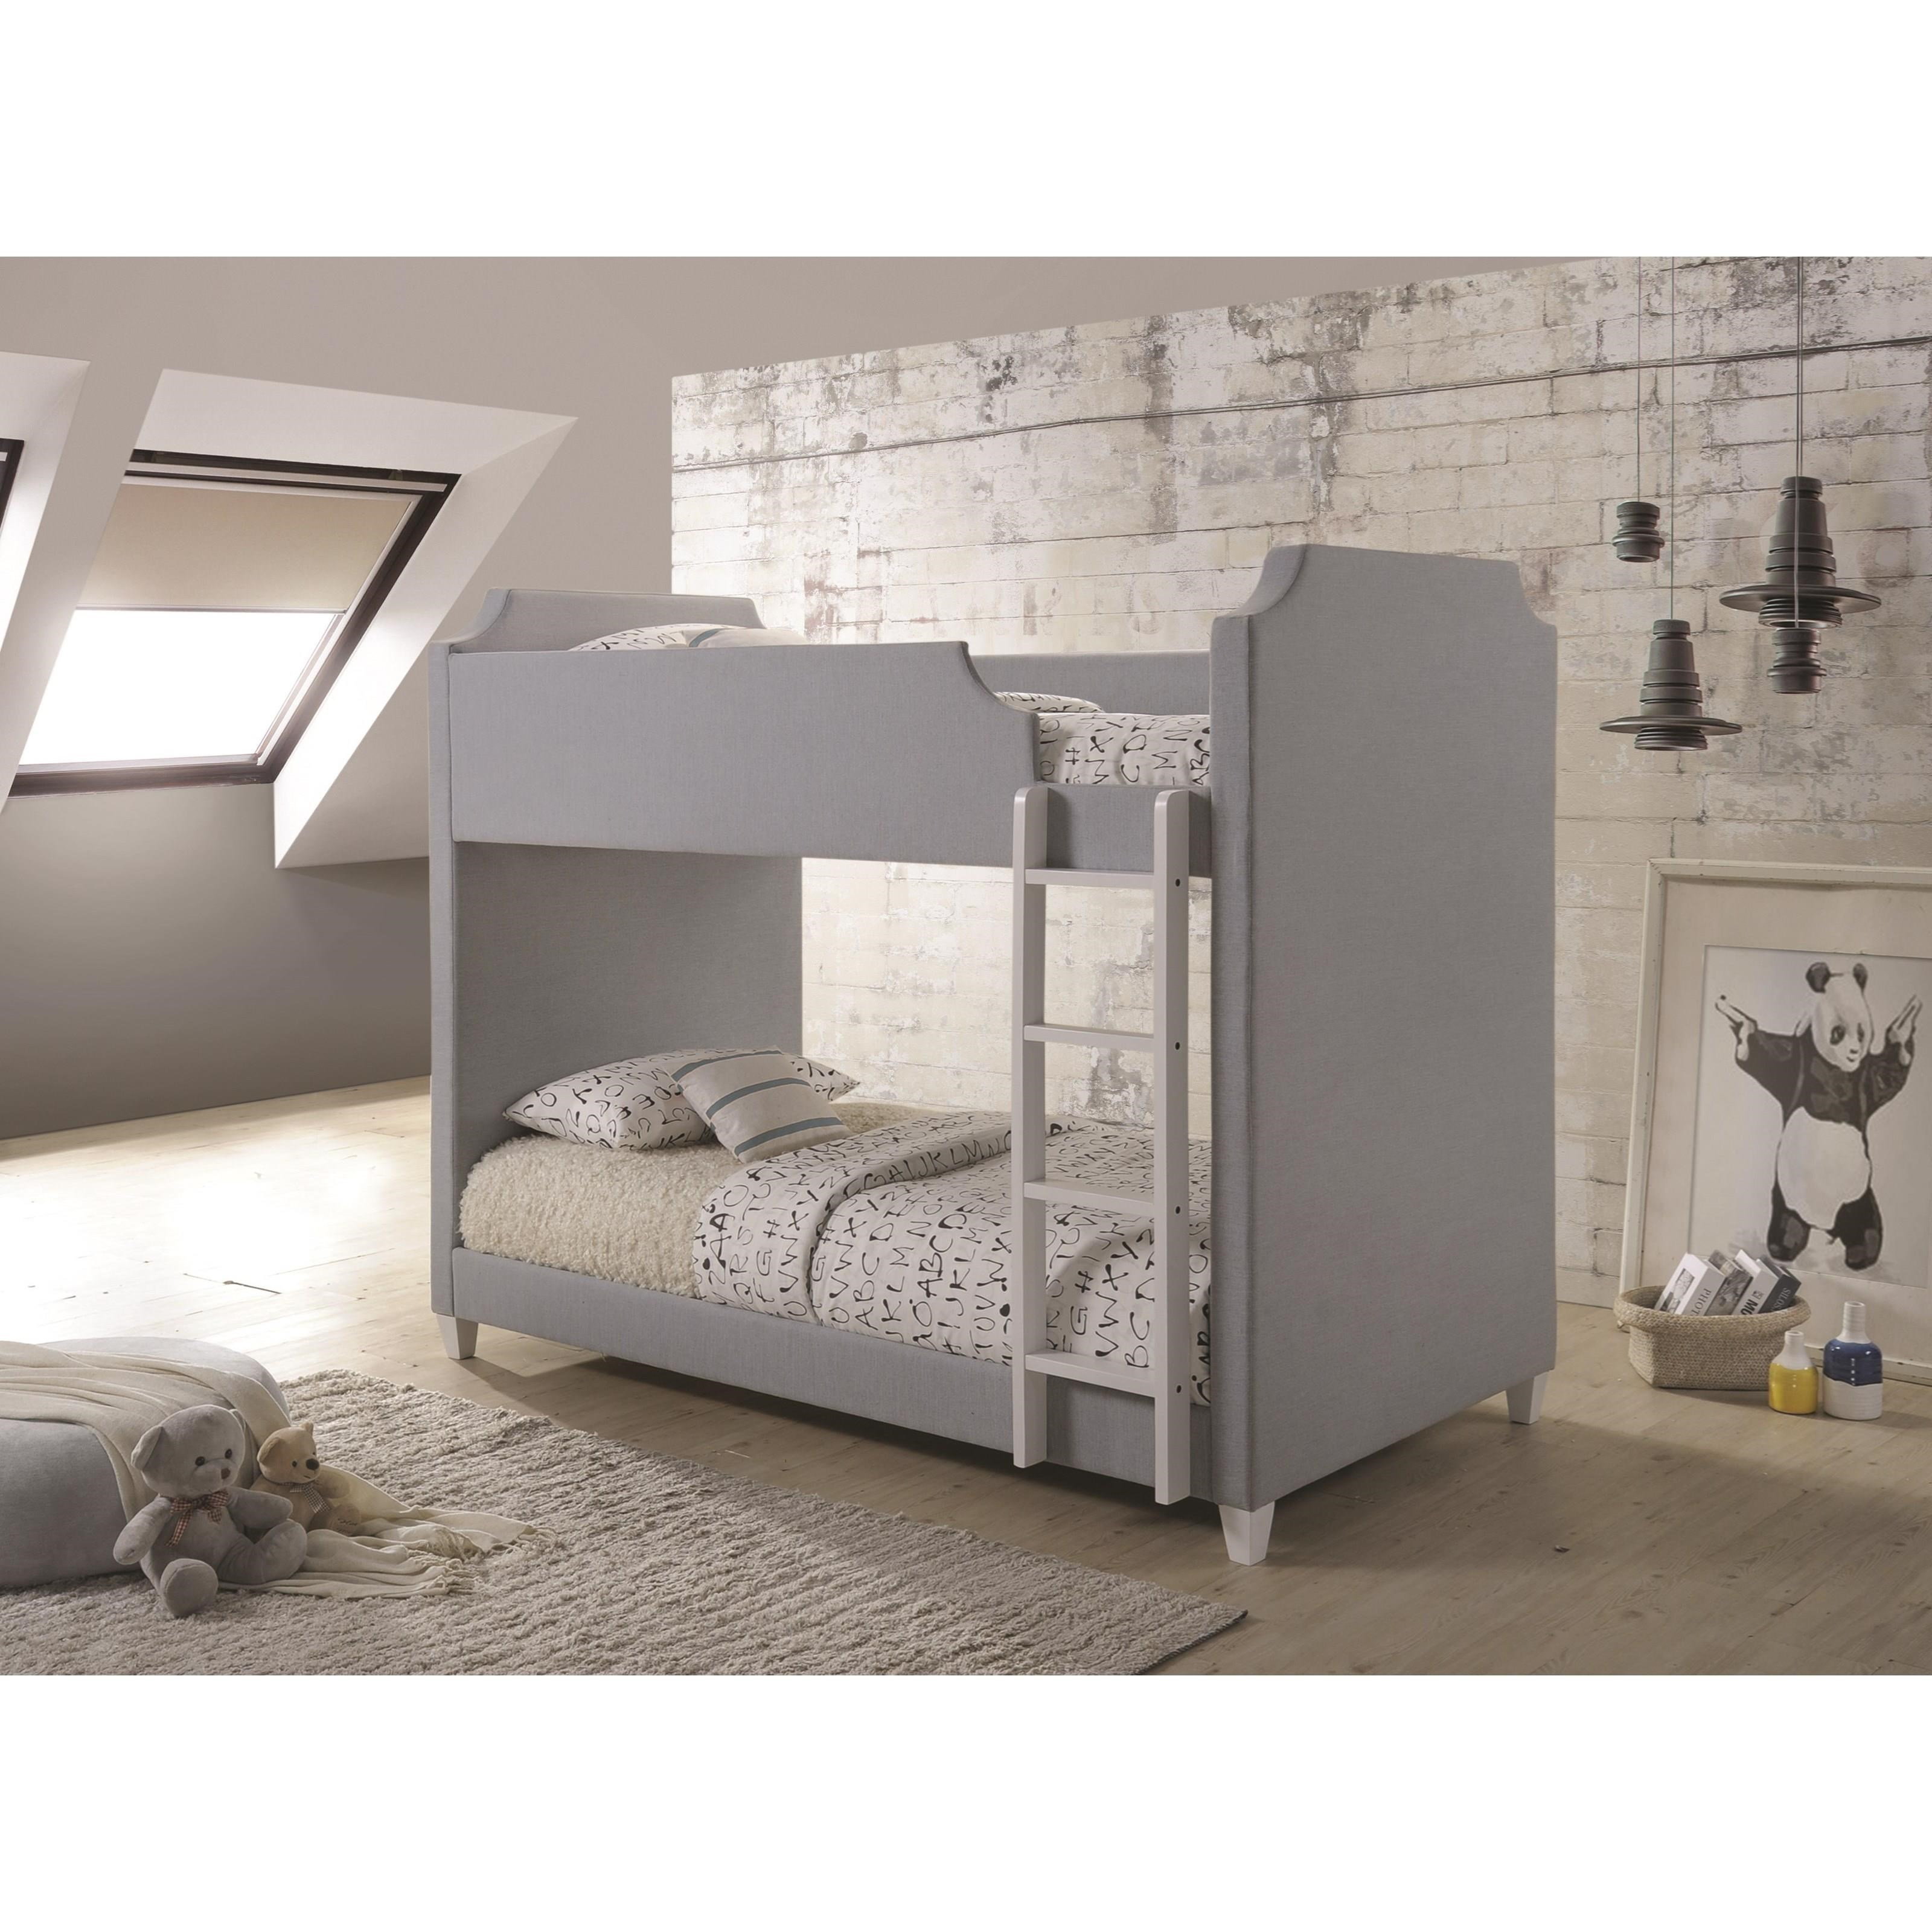 Gilroy Apartments: Gilroy Upholstered Two-Tone Bunk Bed